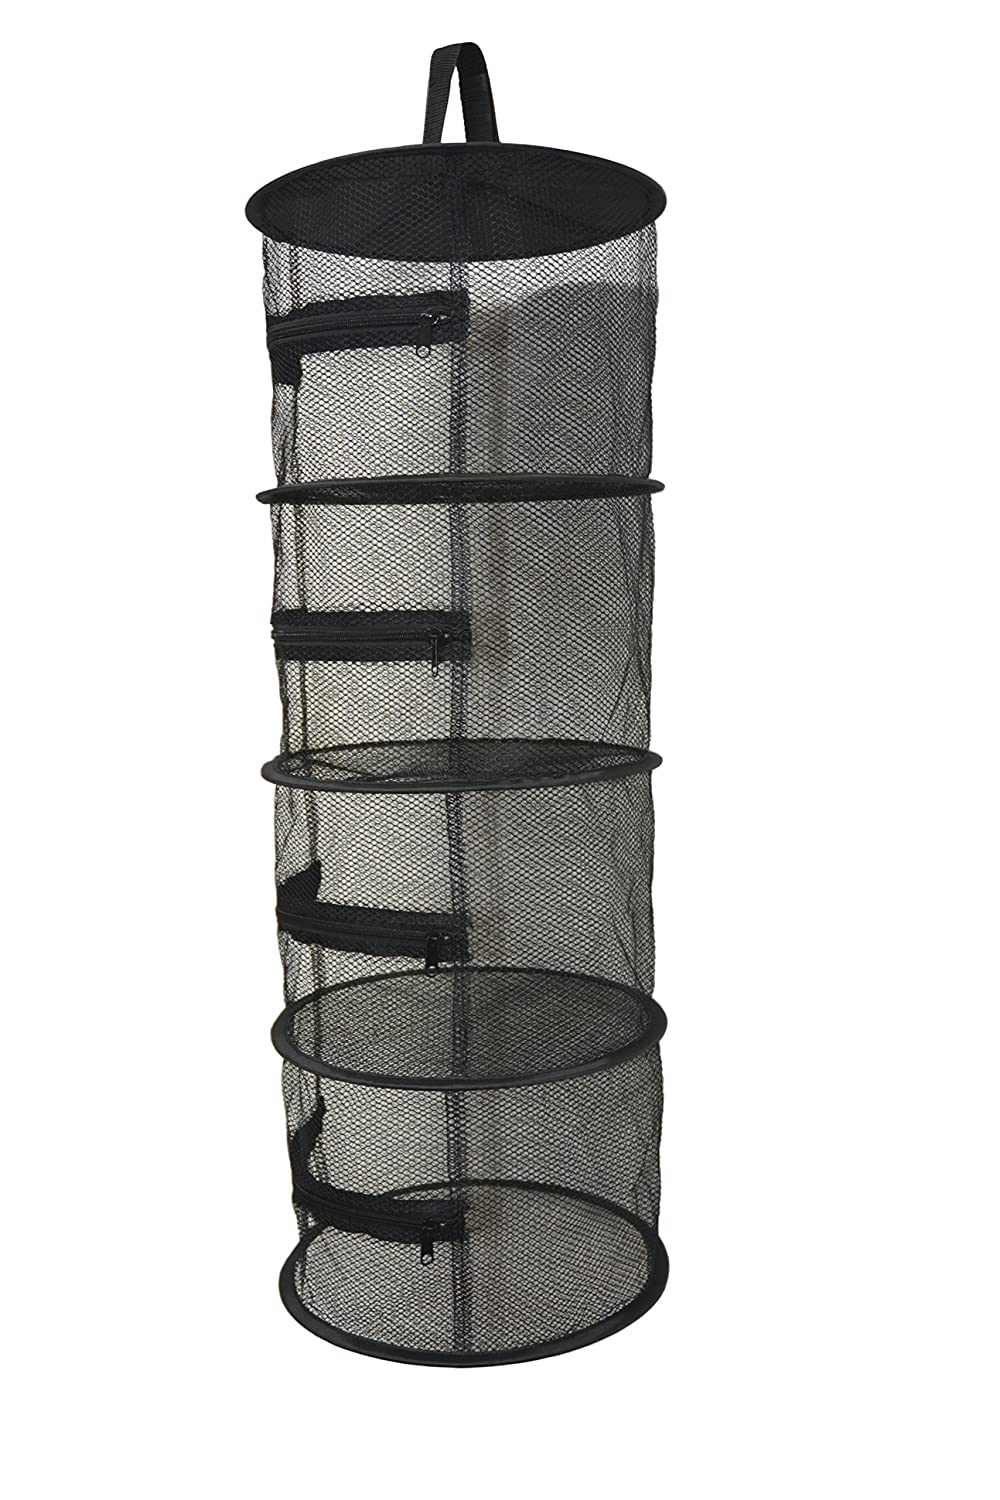 "12"" Diameter Herb Drying Rack 4 Level Compact Hanging Plant trocken Net (nicht Twisting) - Black Mesh Screen W/Zipper für jeder Level - Indoor & Outdoor Verwendung bei Closets, Grow Tents, Apartments, Small Spaces"